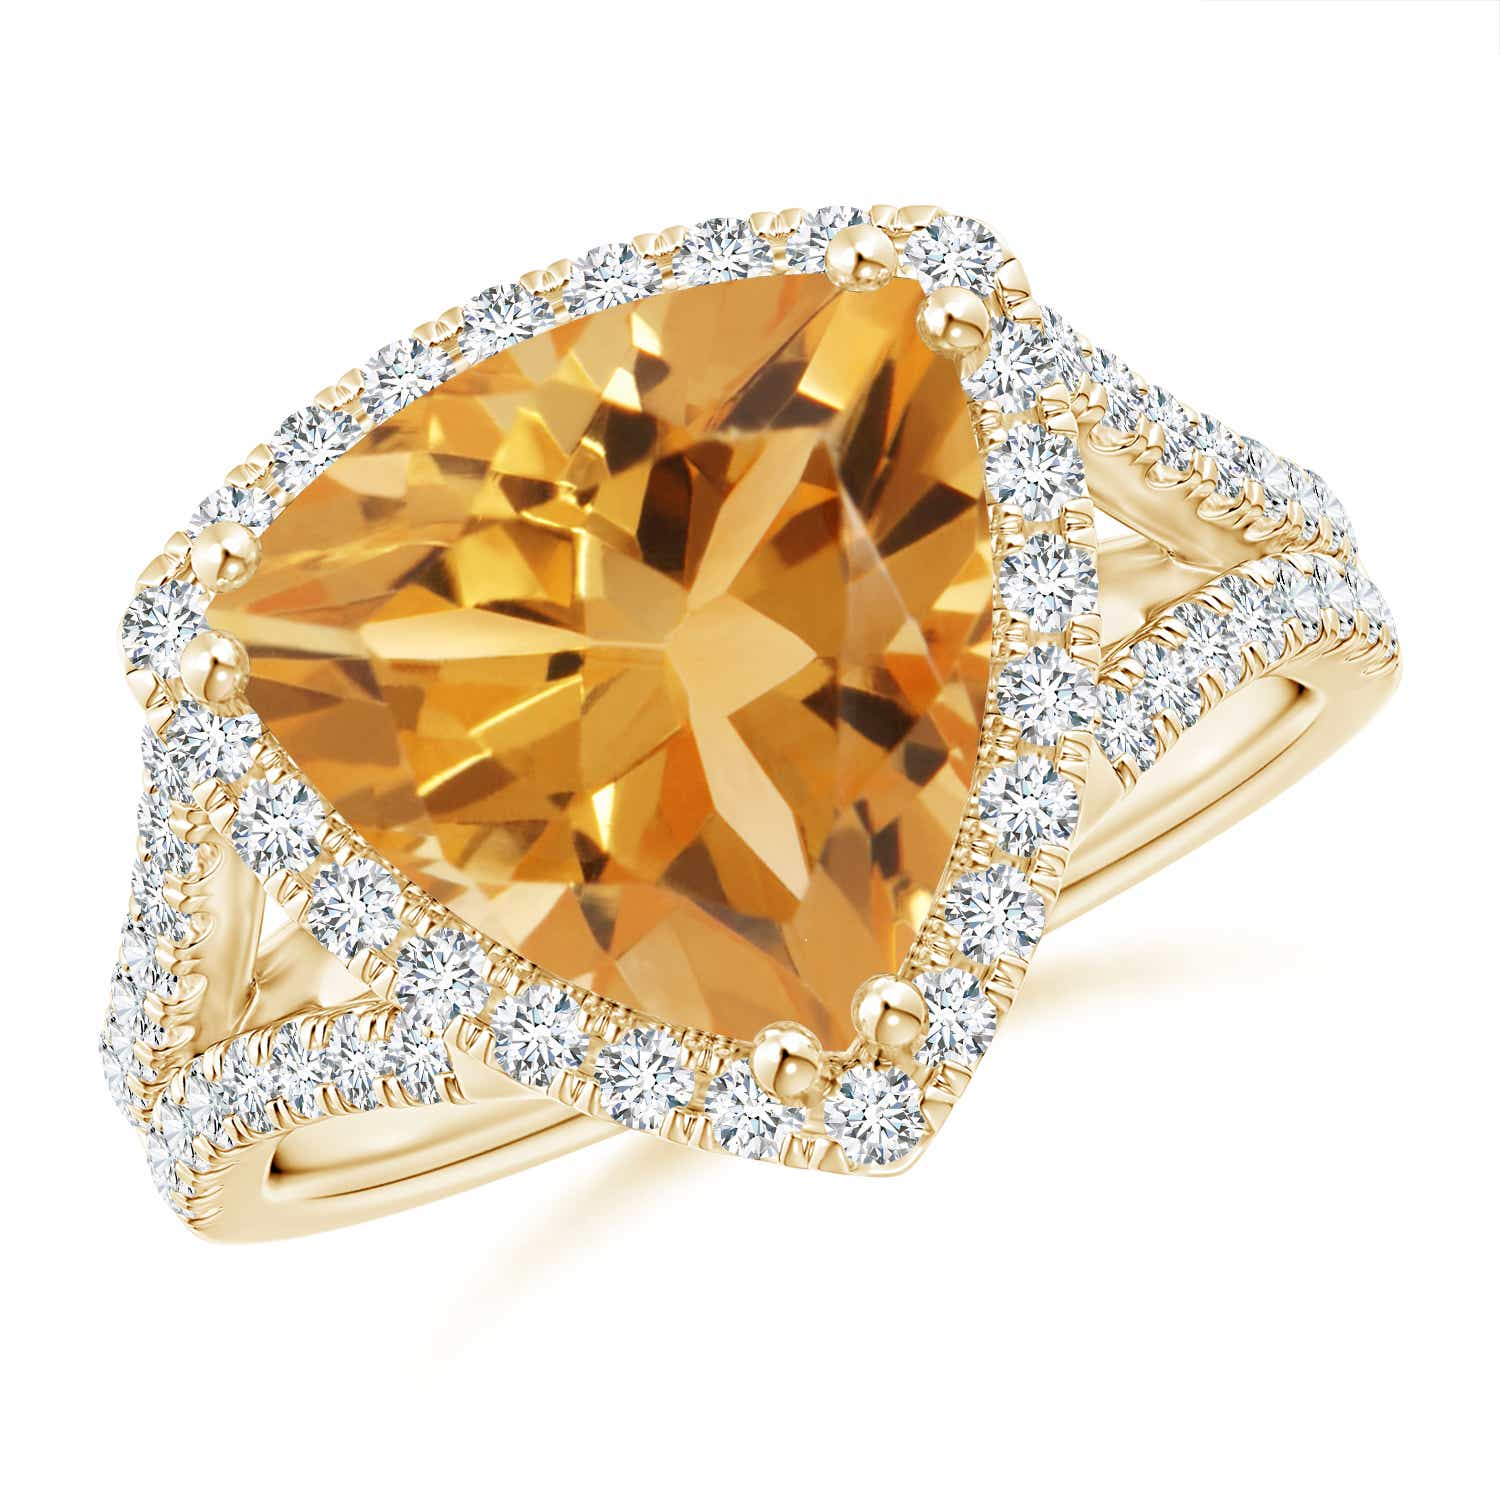 Angara Trillion Citrine Cocktail Ring with Diamond Accents iCcbTb